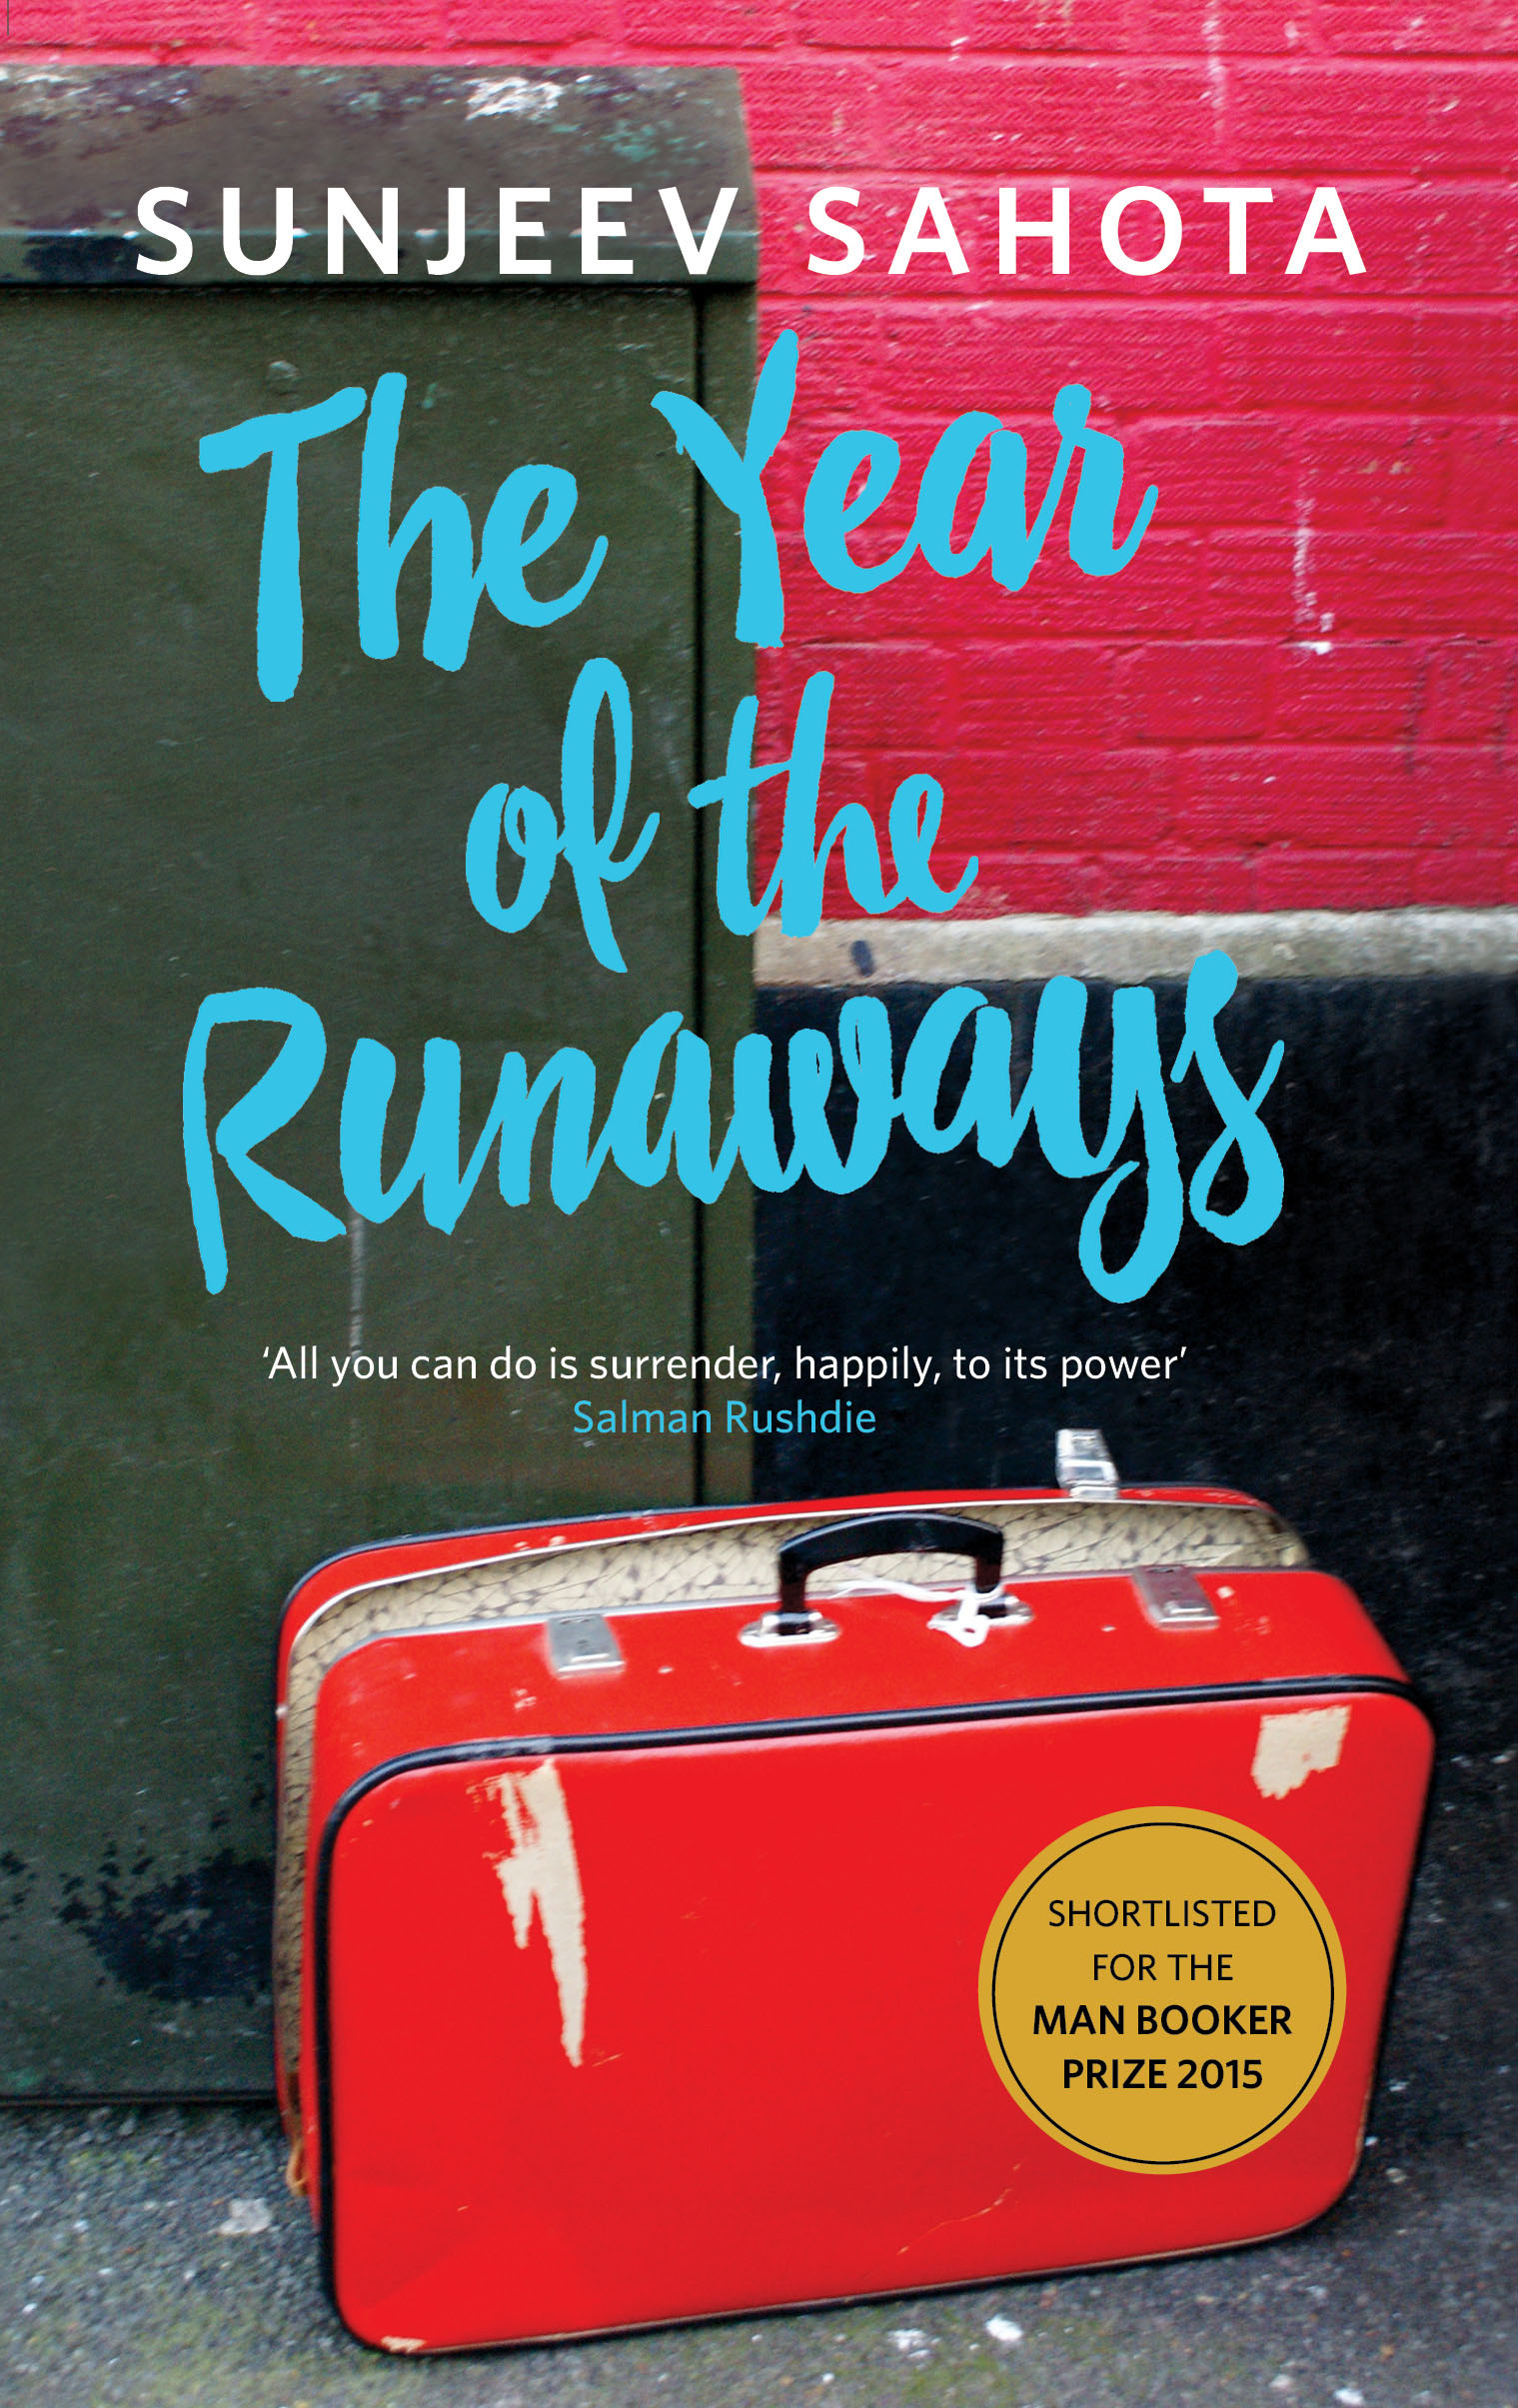 year of the RUNAWAYS WITH NEW SPINE.jpg